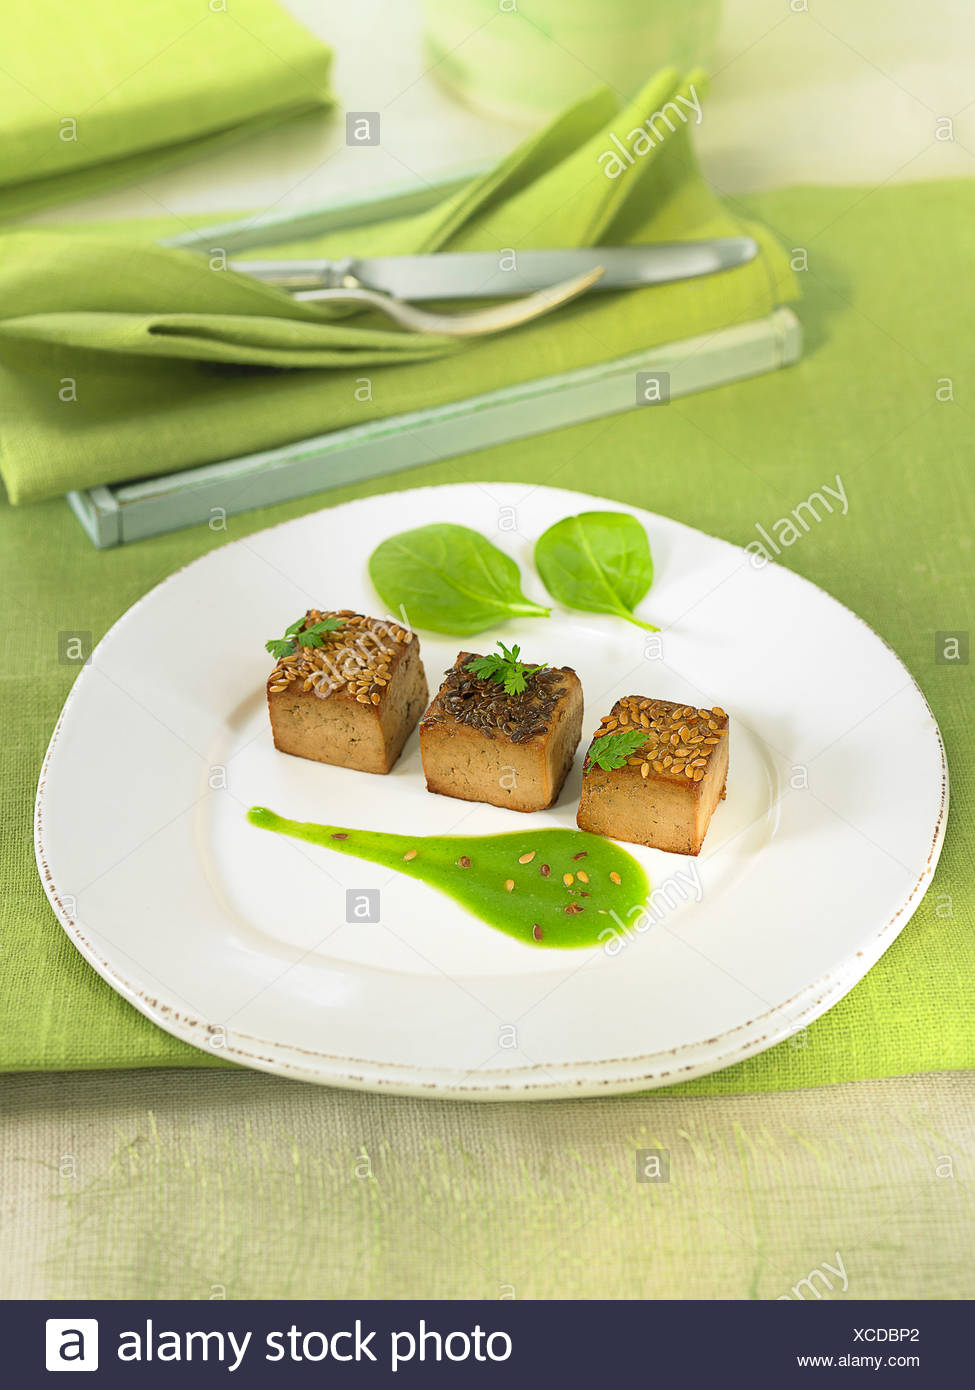 Tofu cubes coated with linseeds ,pureed spinach sauce - Stock Image